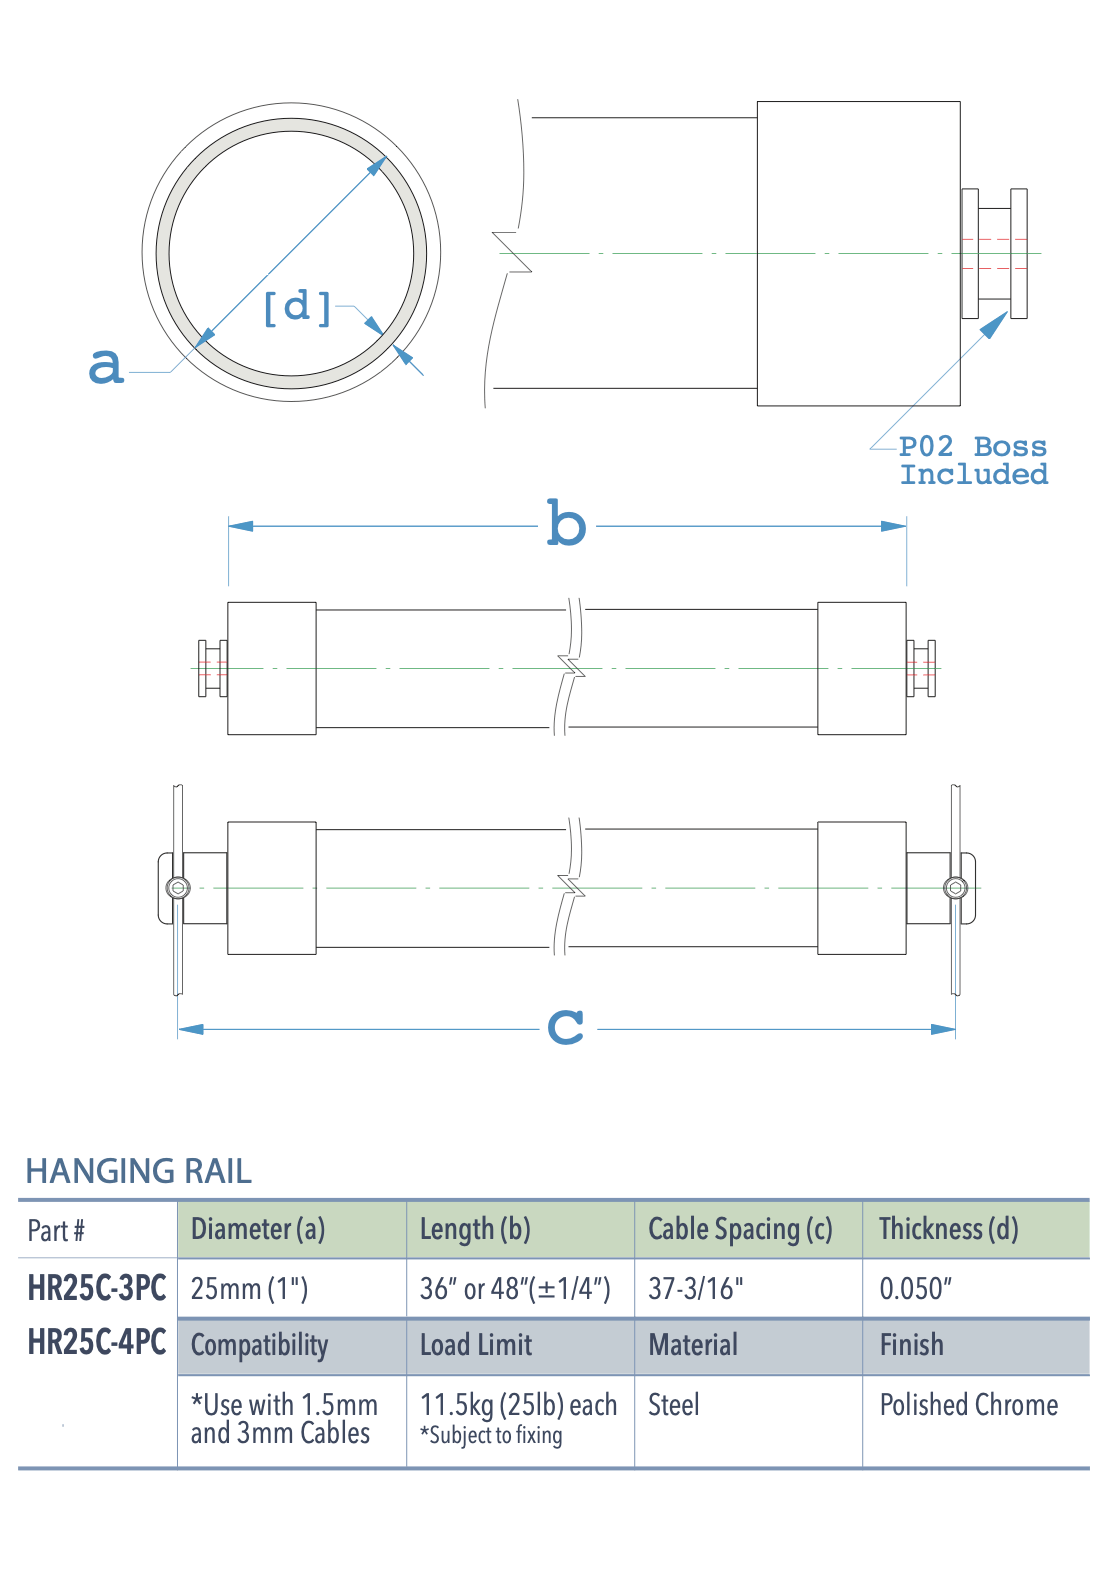 Specifications for HR25C-3PC